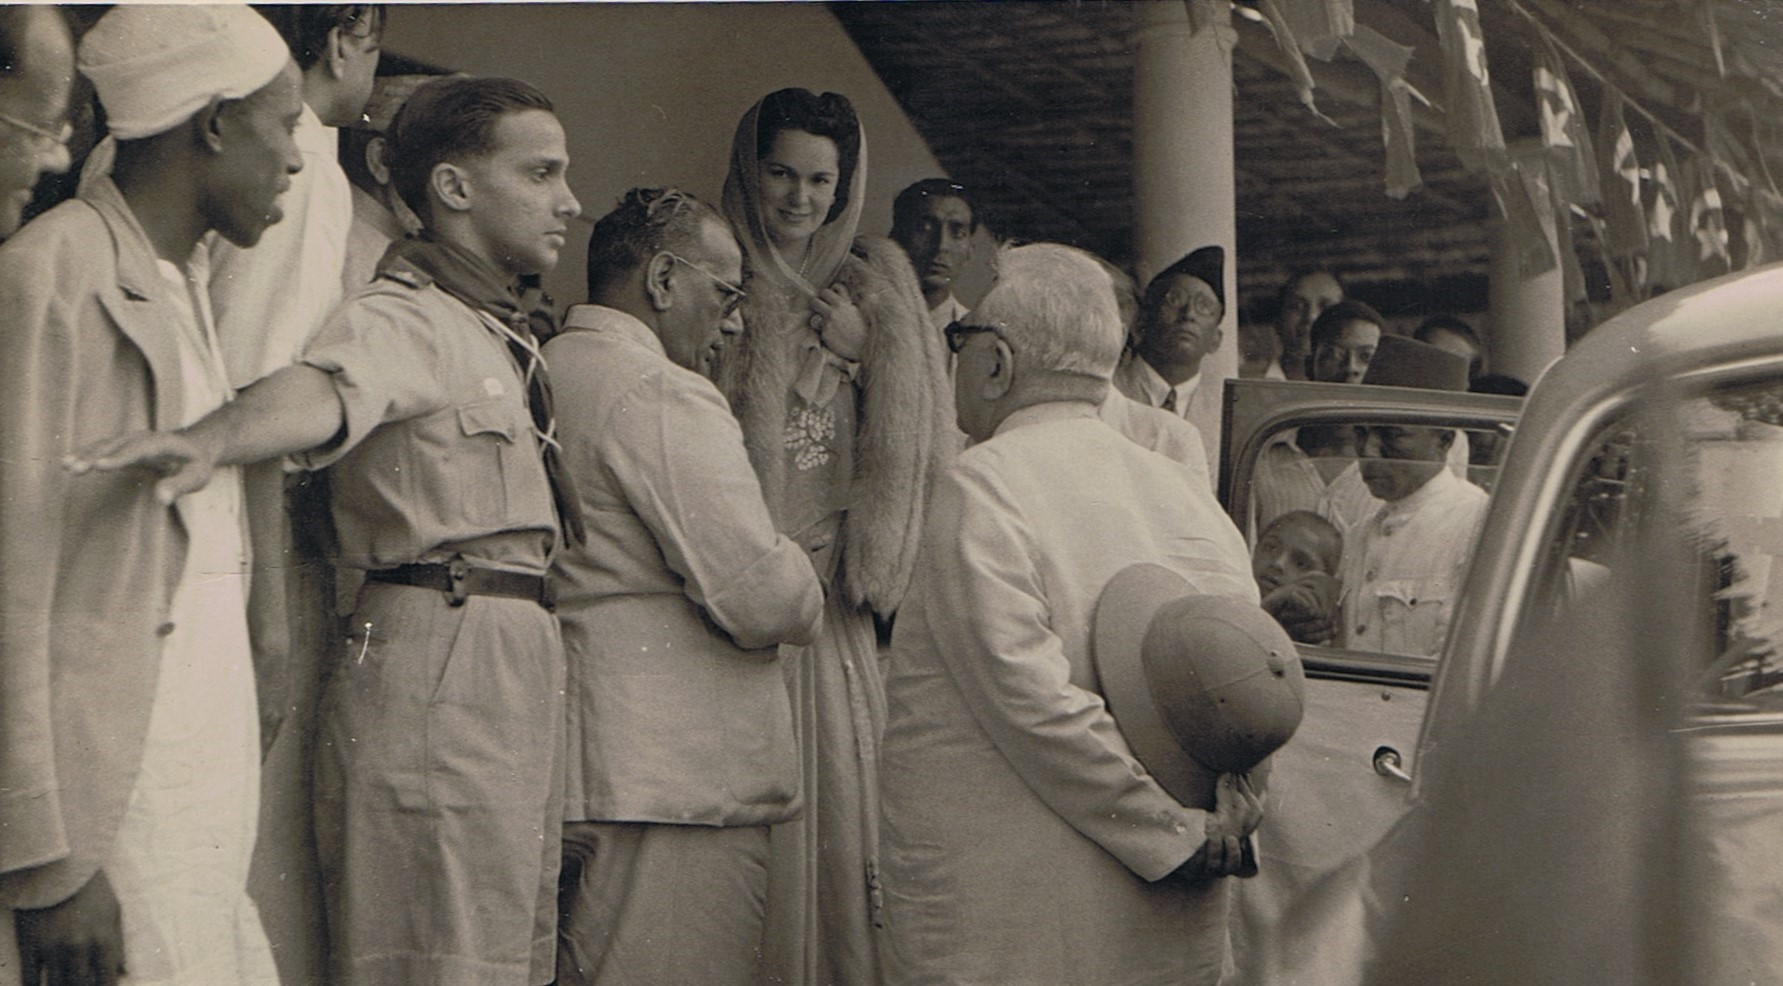 Aga Khan III at Muslim meeting in Mombasa with the Begum. Barakah.